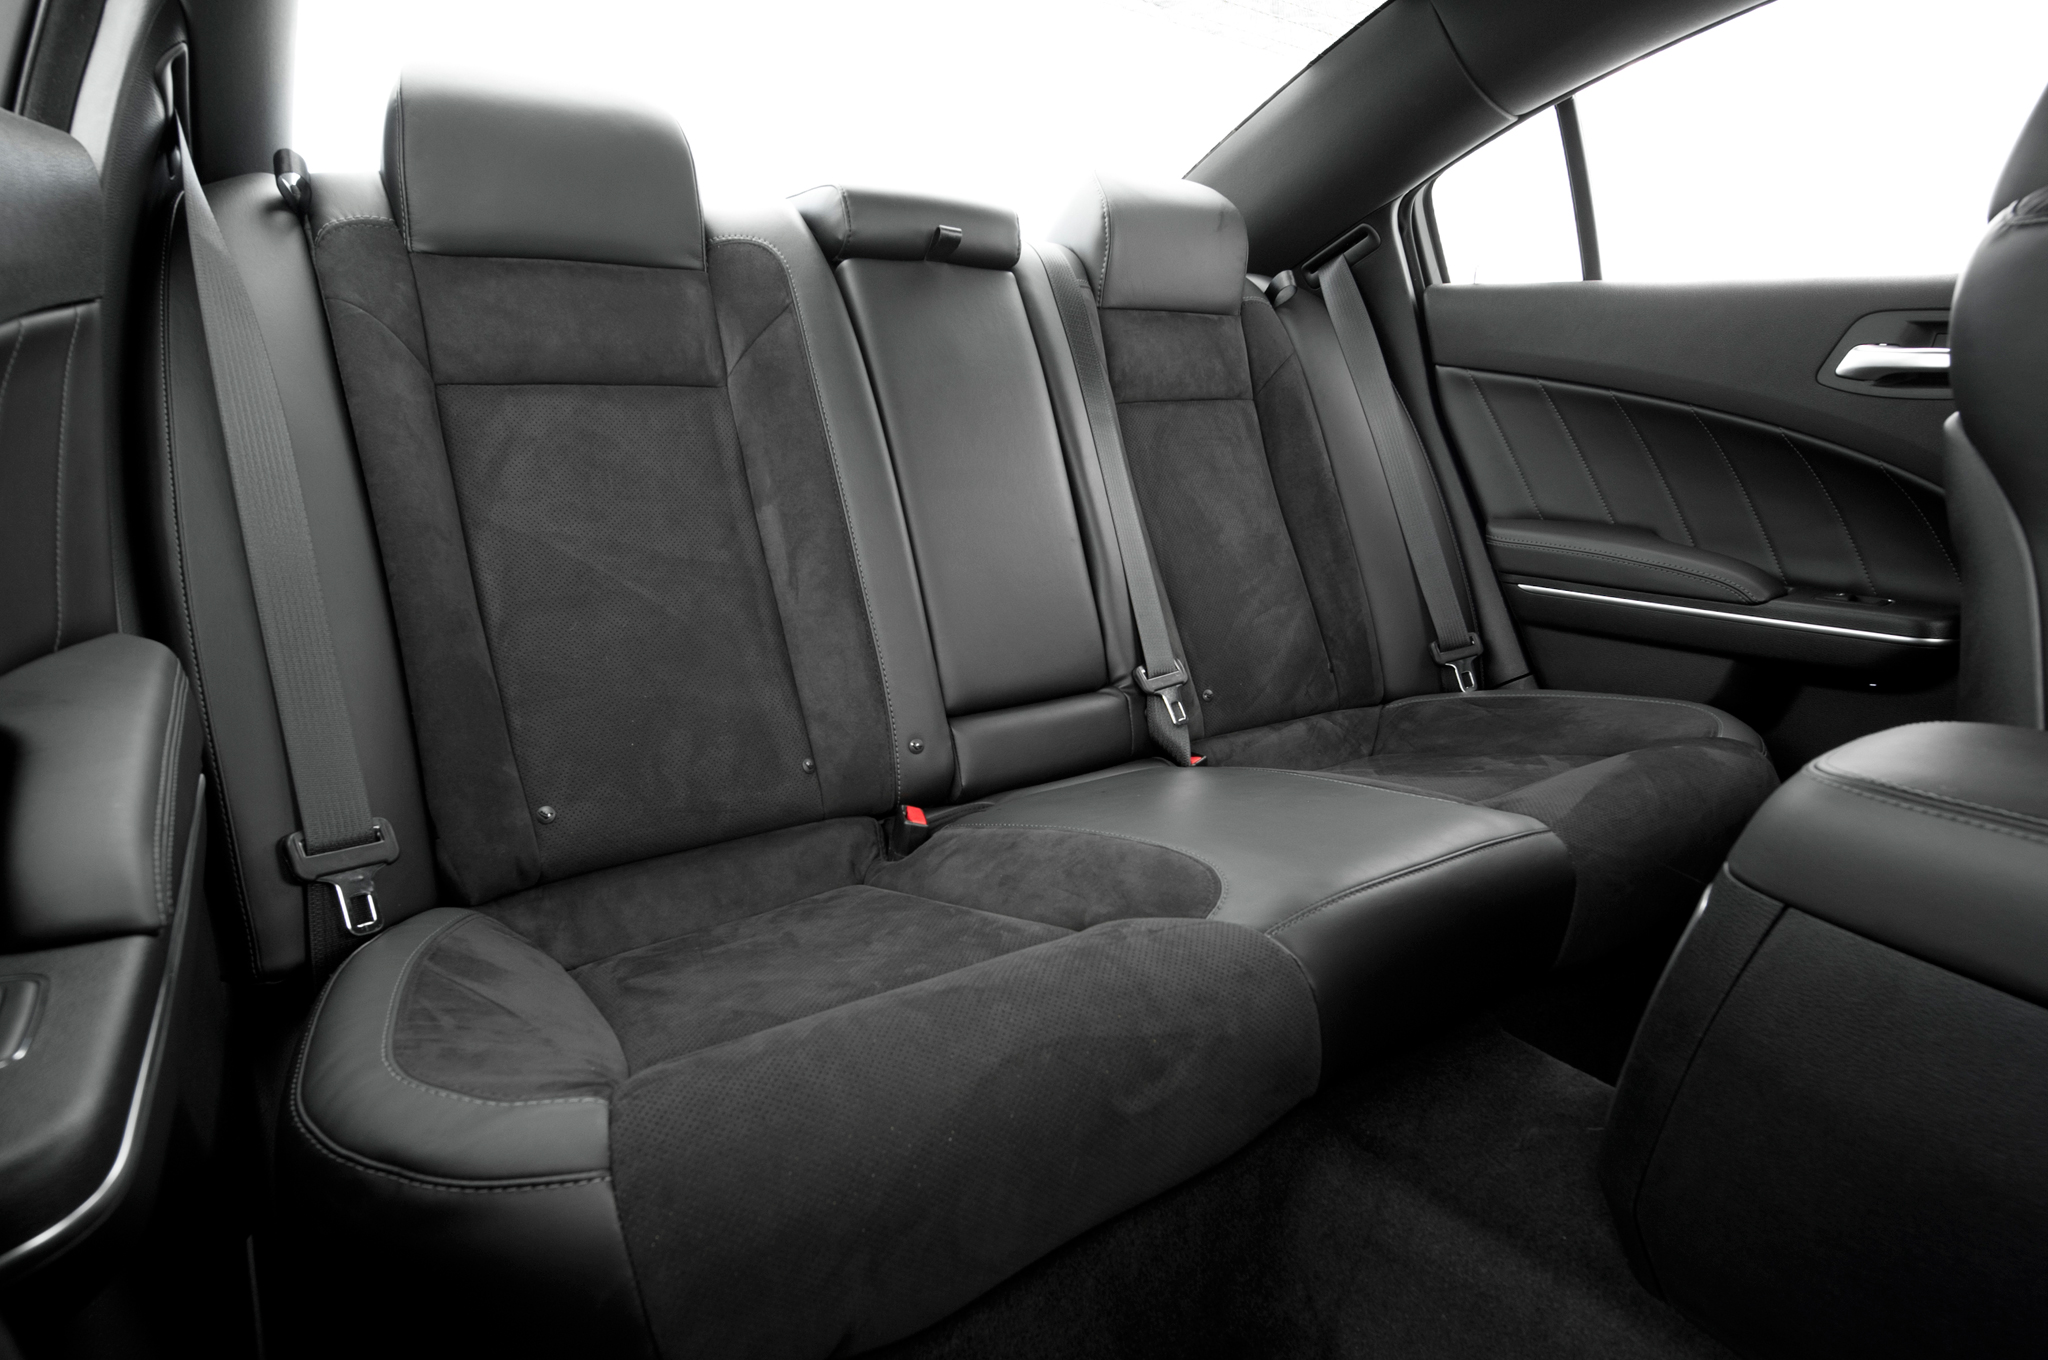 2015 Dodge Charger Rear Interior Seats